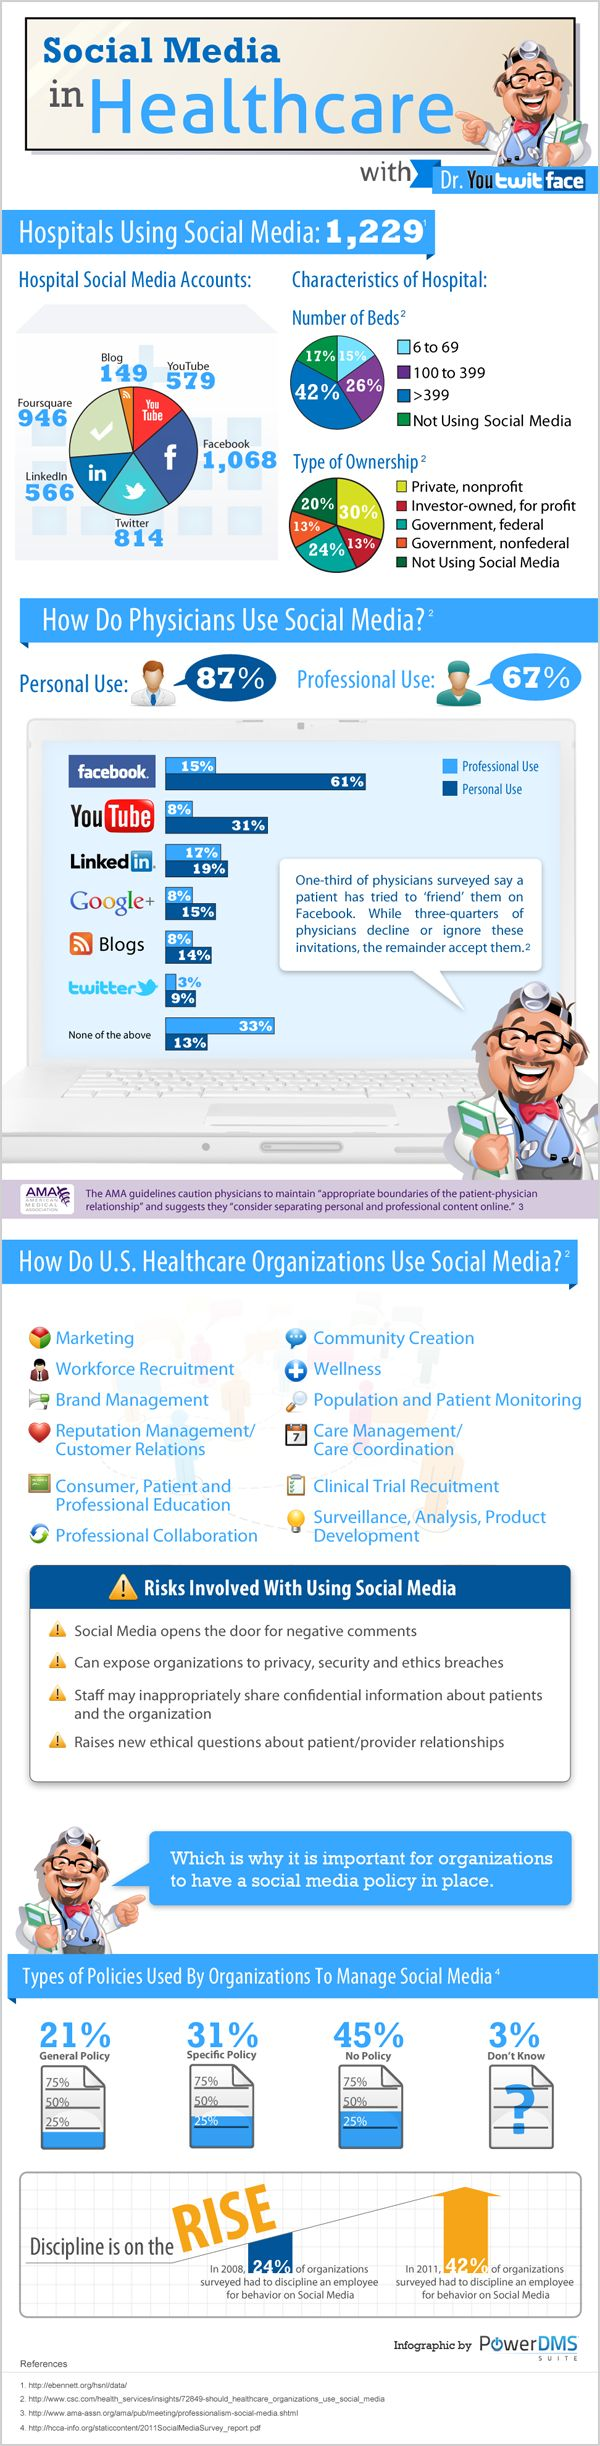 Social Media in Healthcare. #infographic